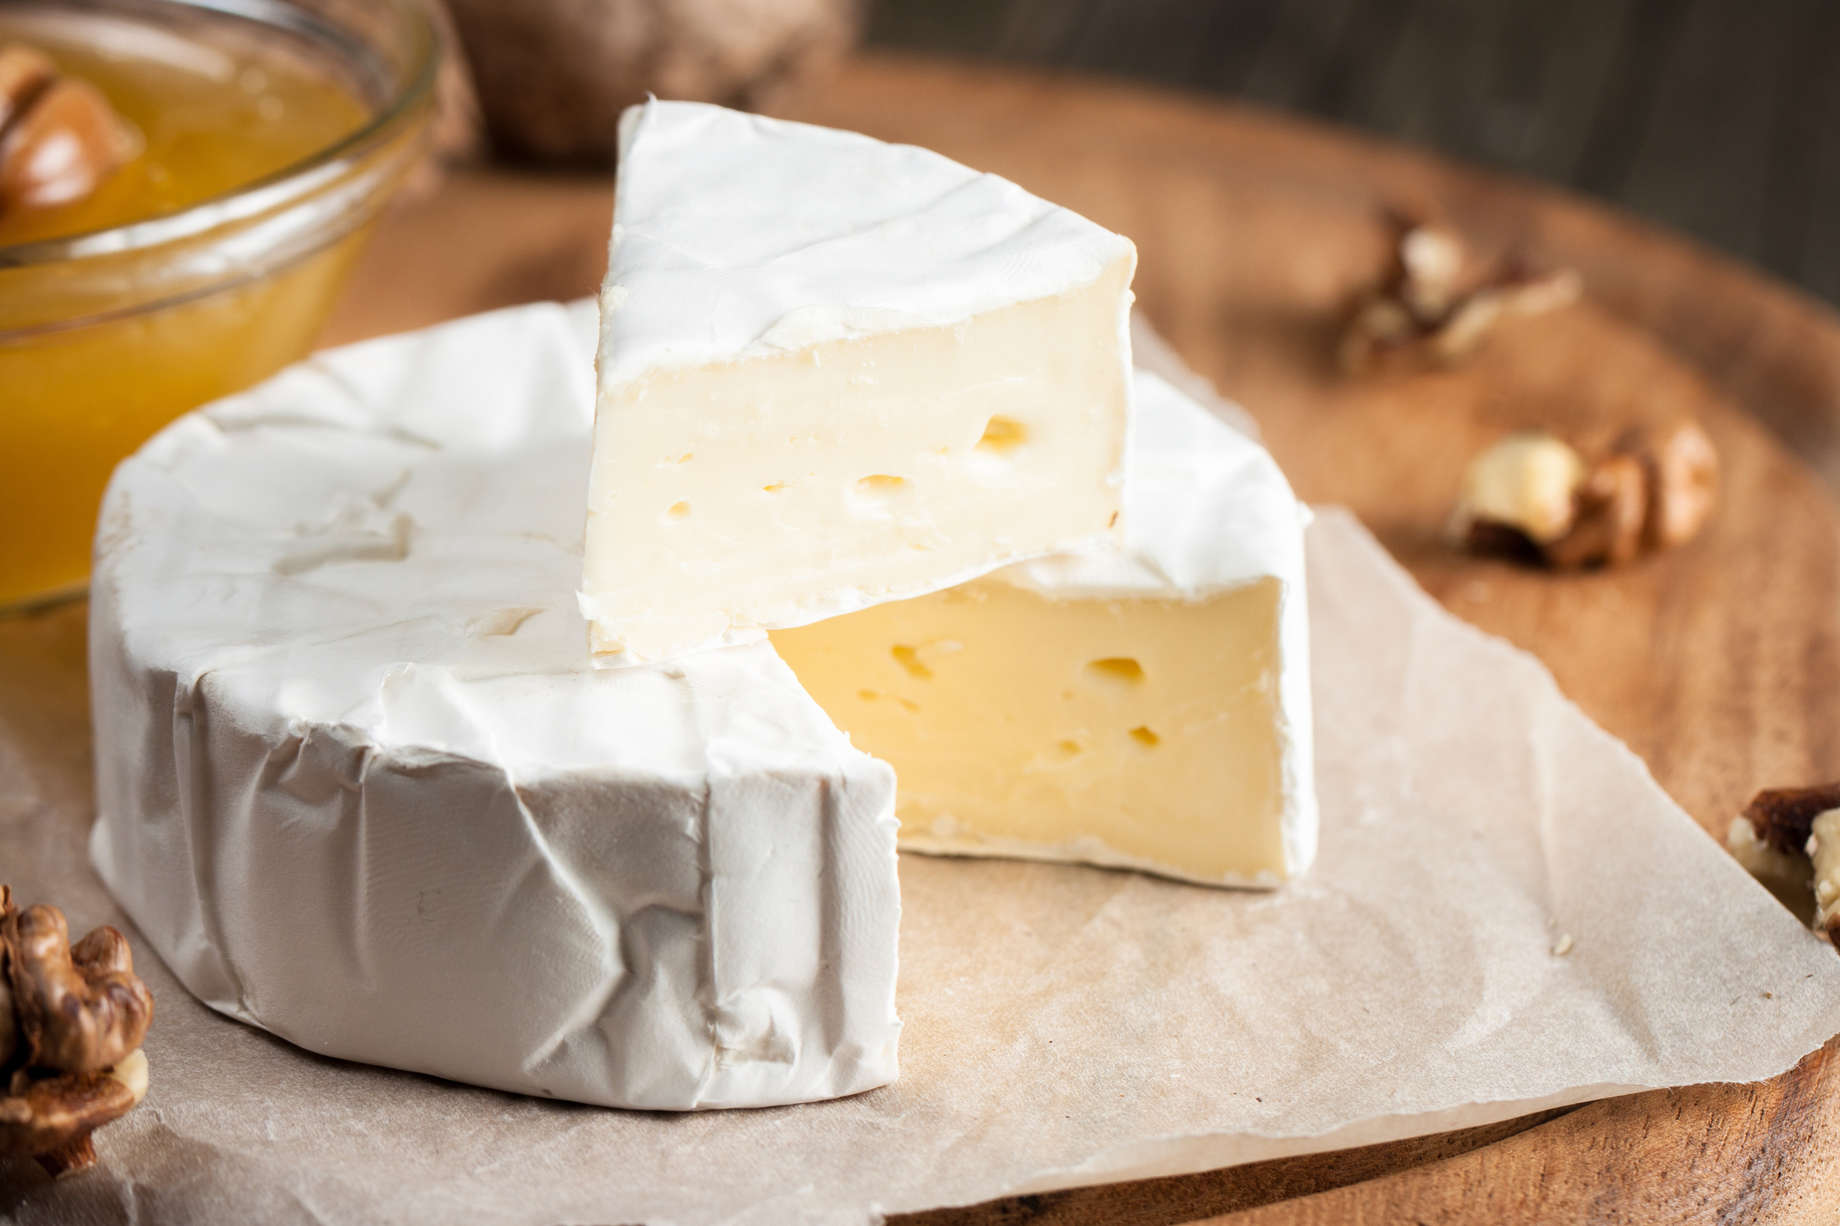 How Long Does Cheese Last in the Fridge? Cheese Expiration